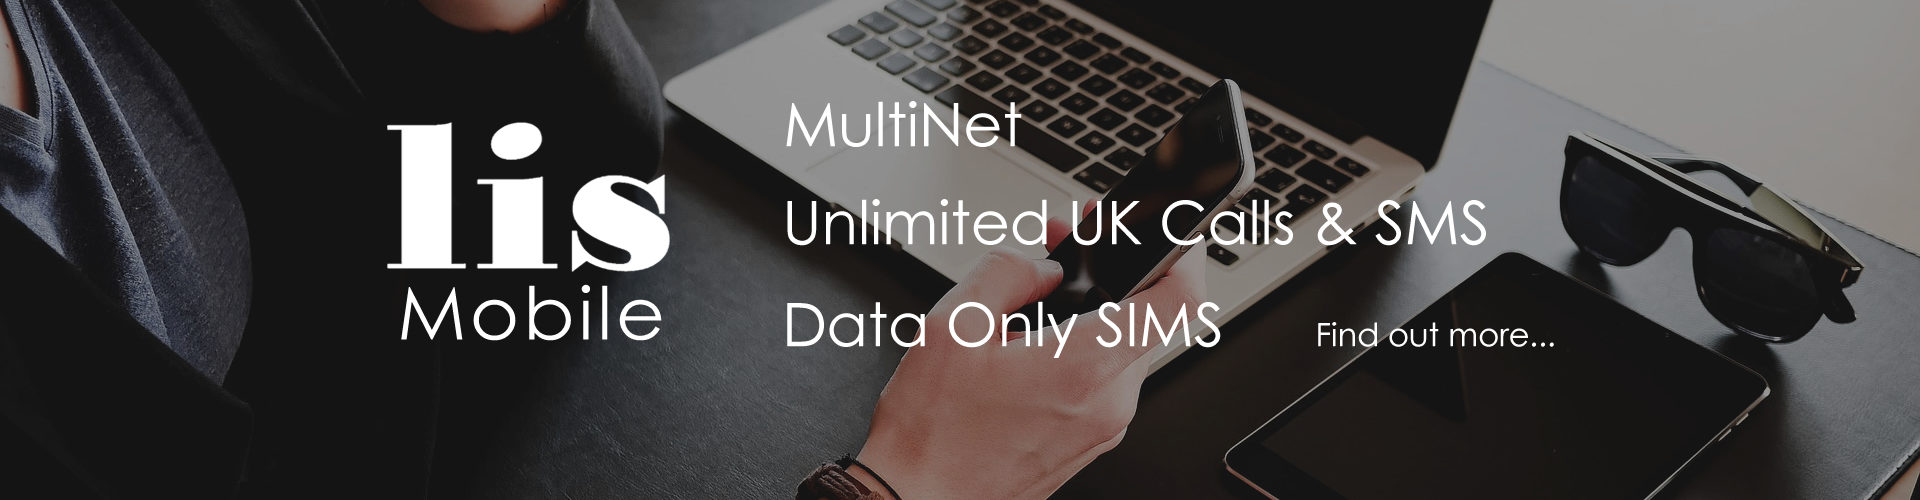 Mobile for Business with UK Support